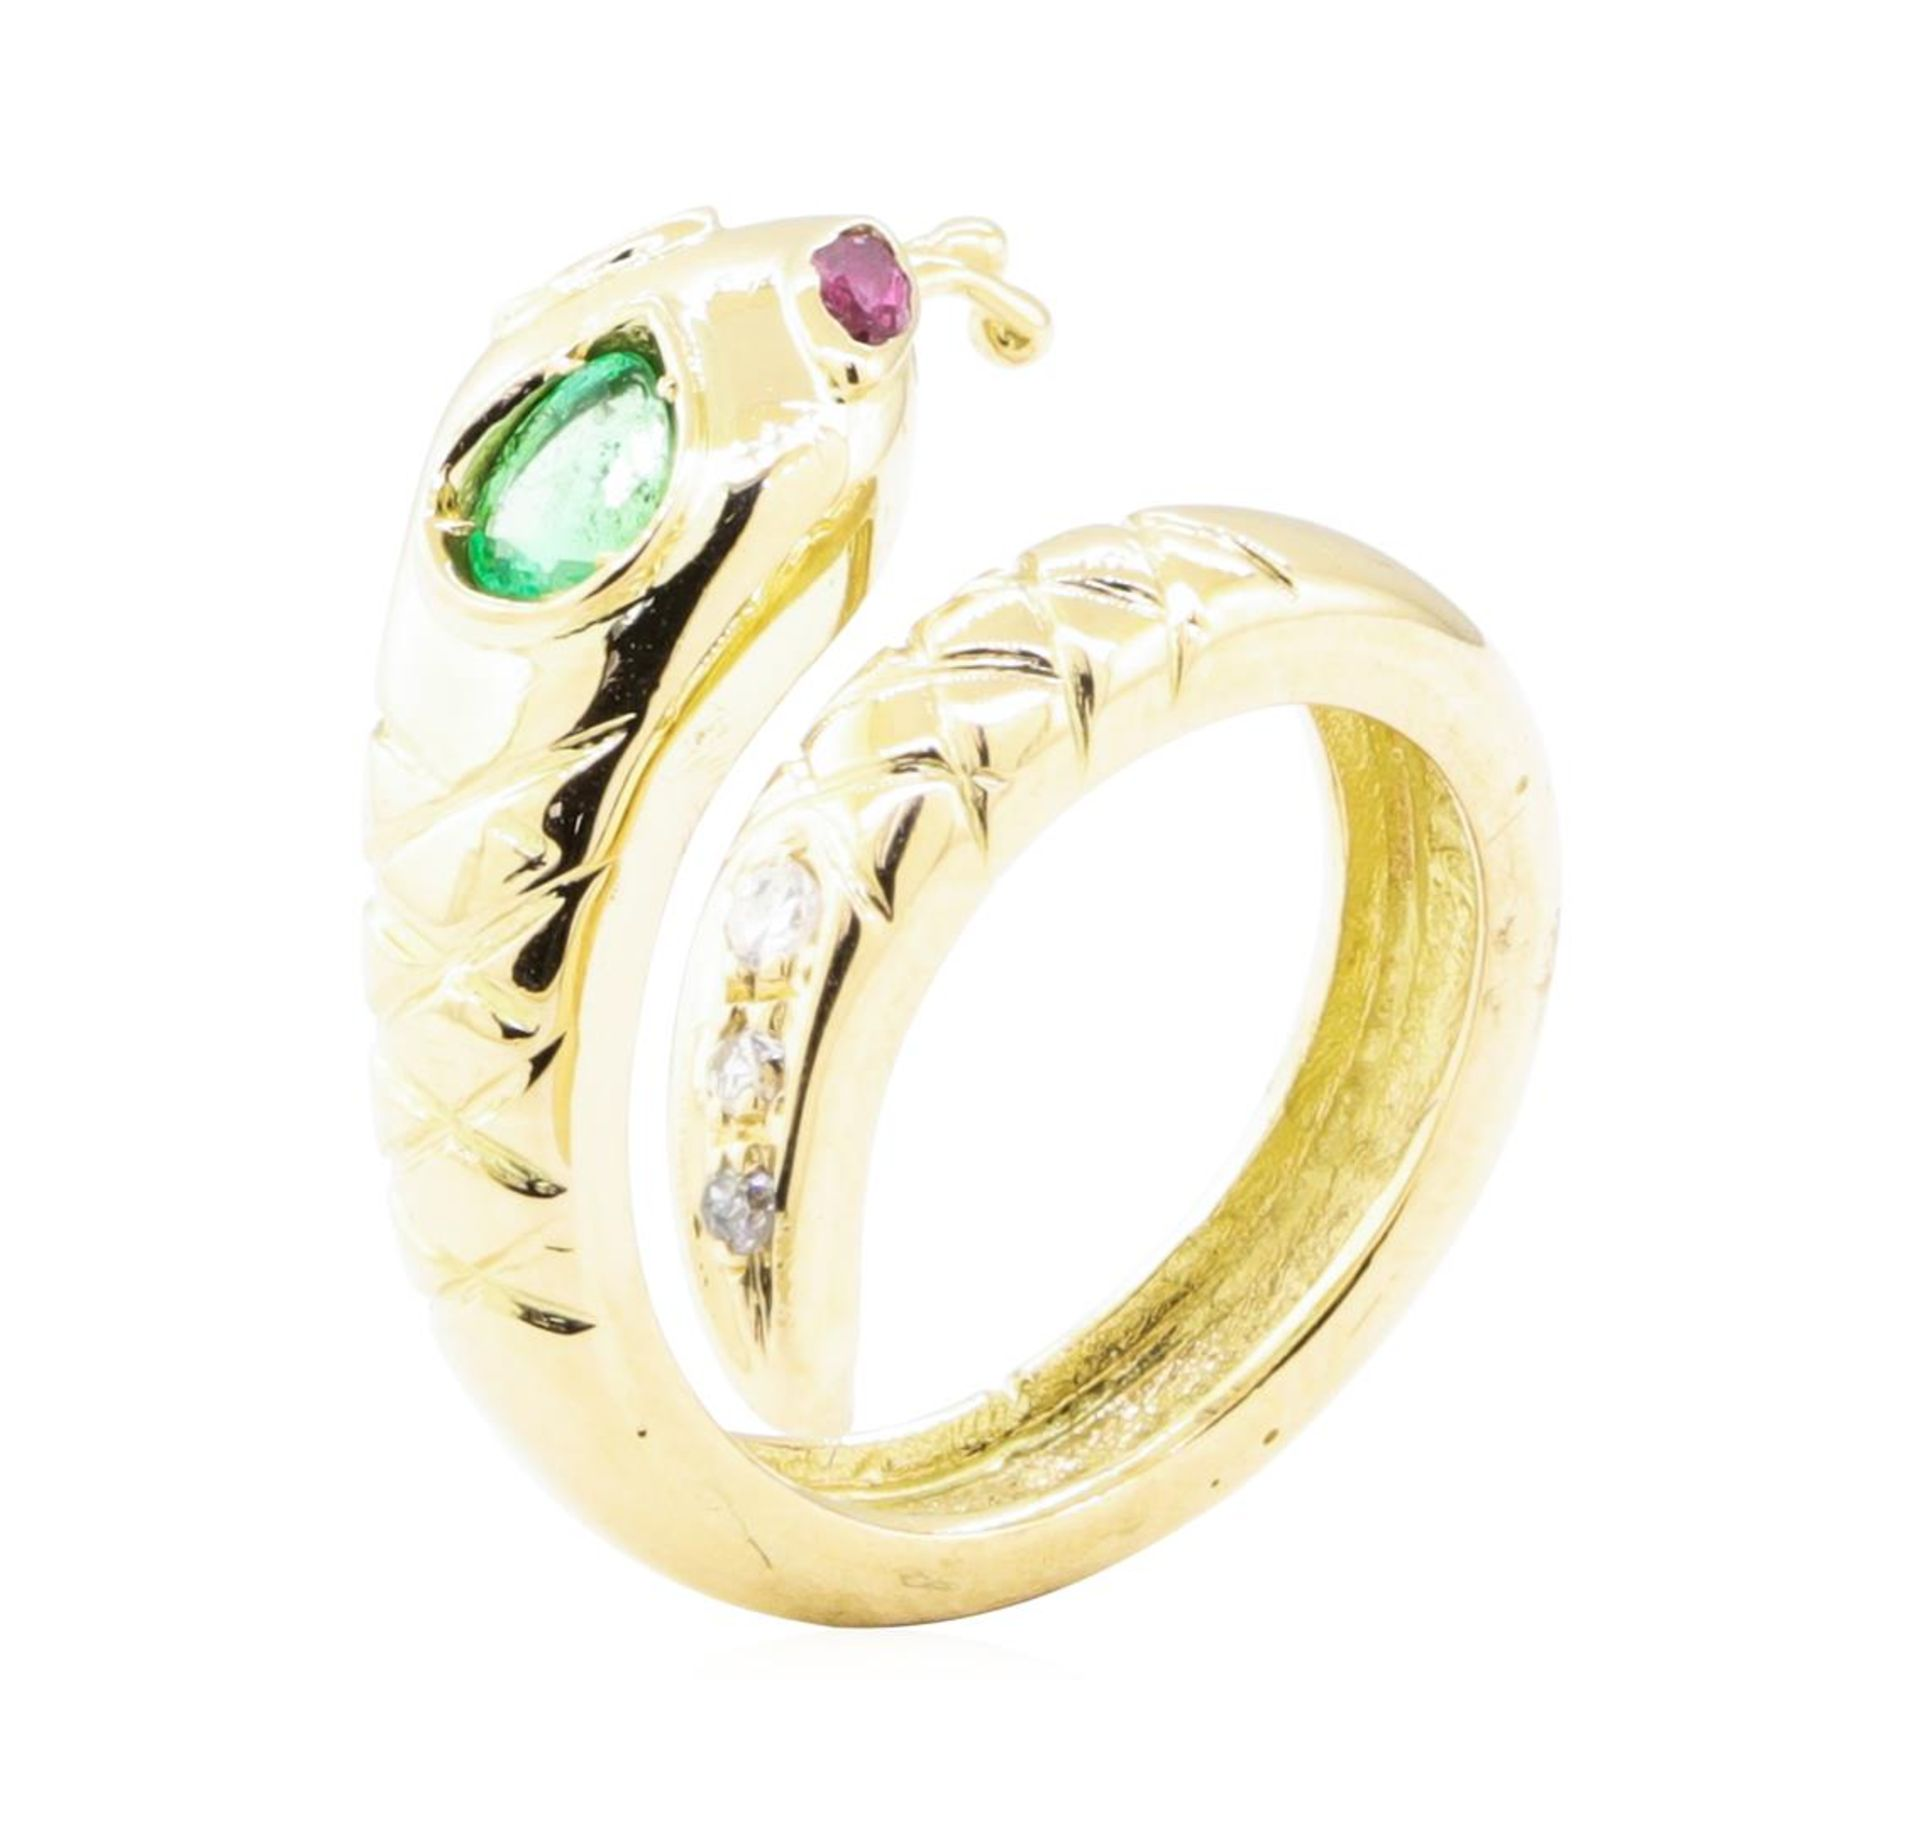 0.66ctw Emerald, Ruby, and Diamond Snake Ring - 14KT Yellow Gold - Image 4 of 4